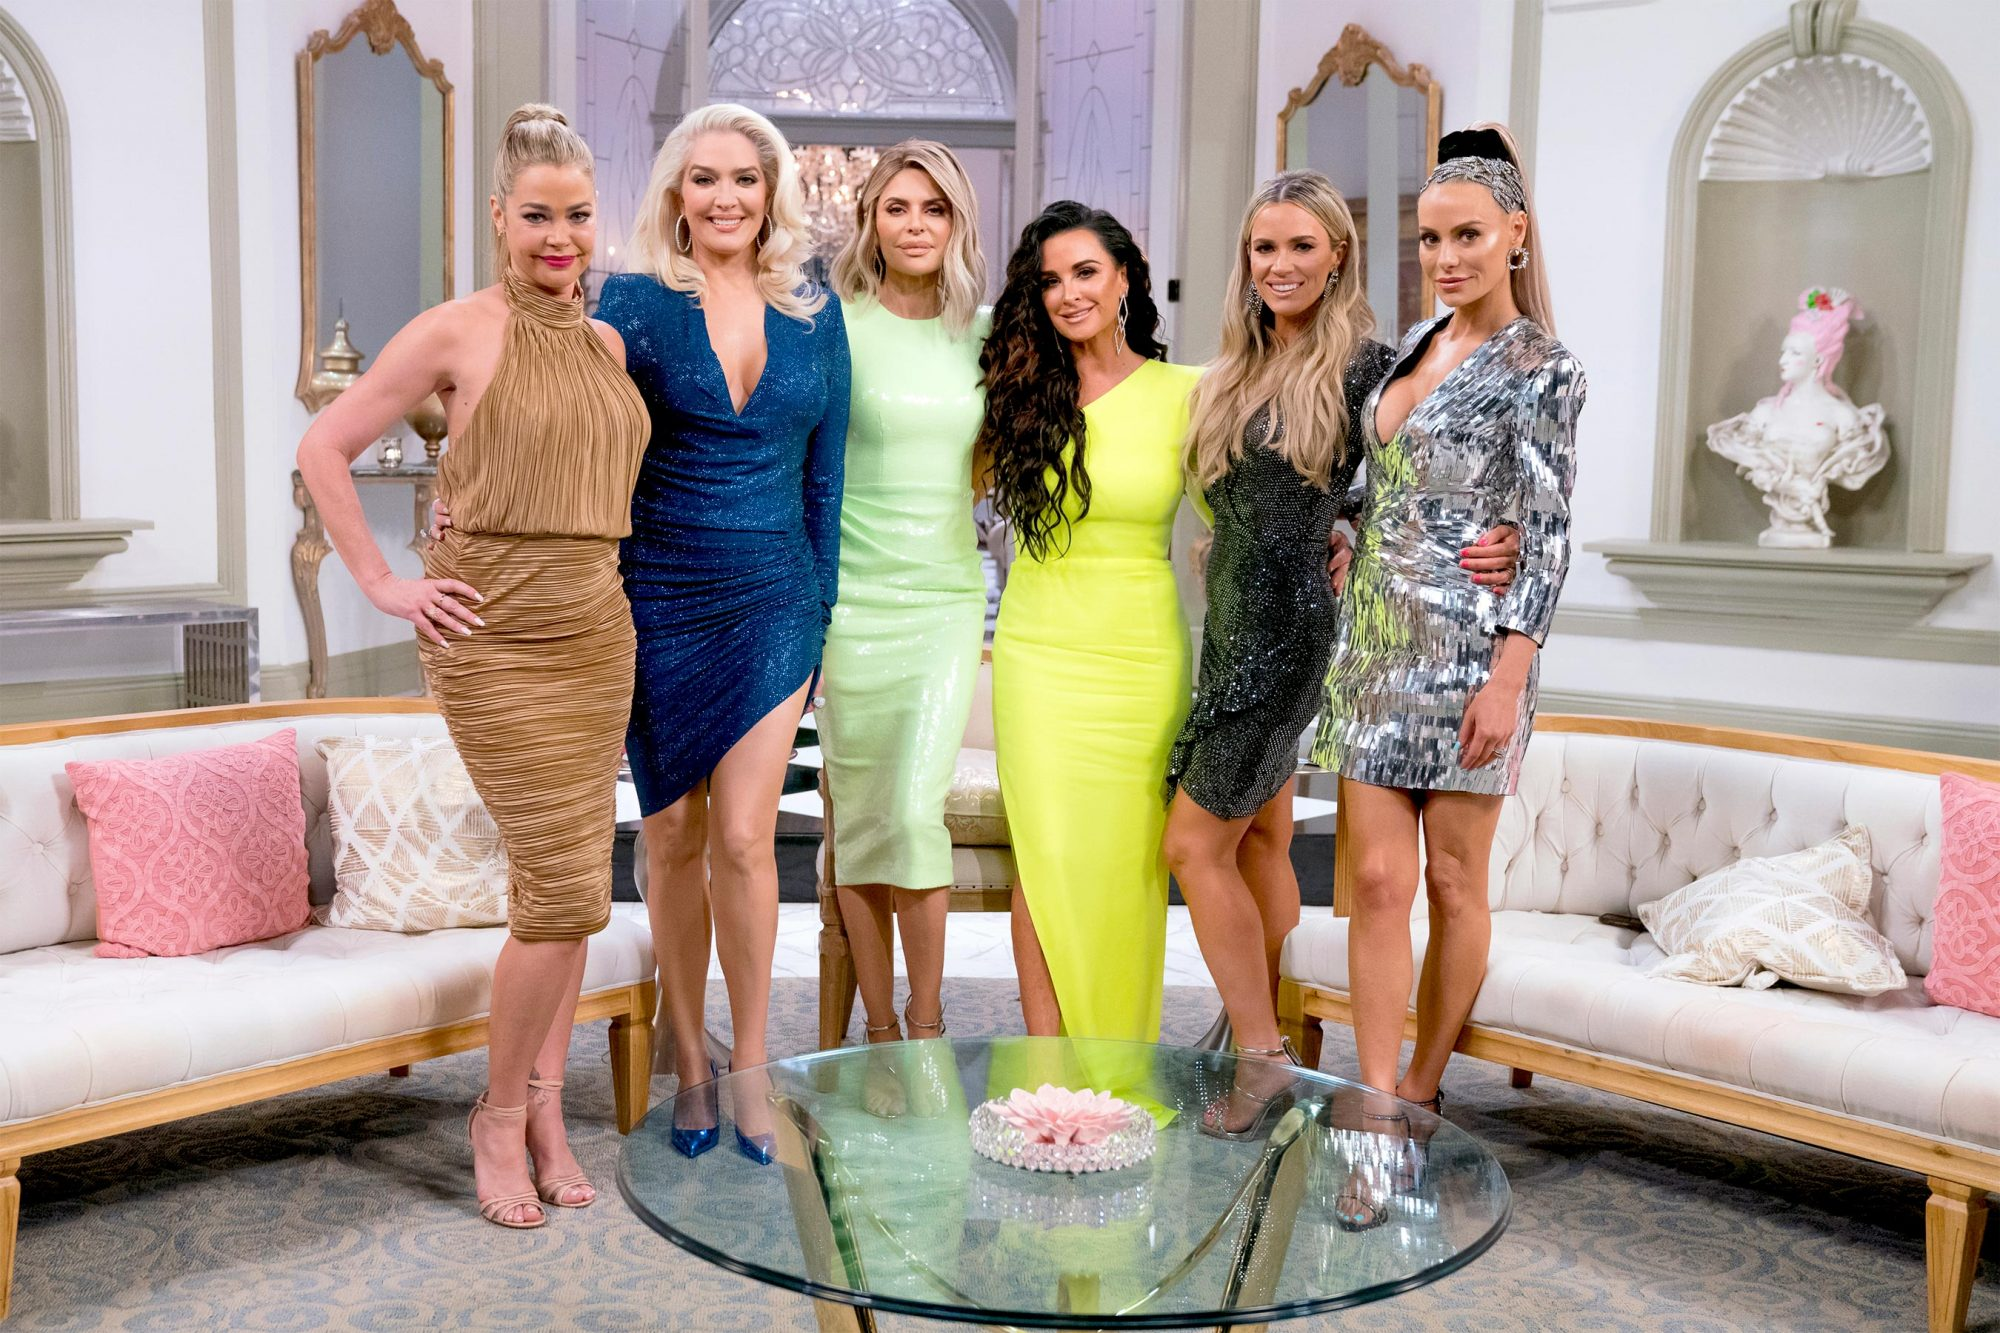 "THE REAL HOUSEWIVES OF BEVERLY HILLS -- ""Reunion"" -- Pictured: (l-r) Denise Richards, Erika Girardi, Lisa Rinna, Kyle Richards, Teddi Mellencamp Arroyave, Dorit Kemsley -- (Photo by: Nicole Weingart/Bravo)"